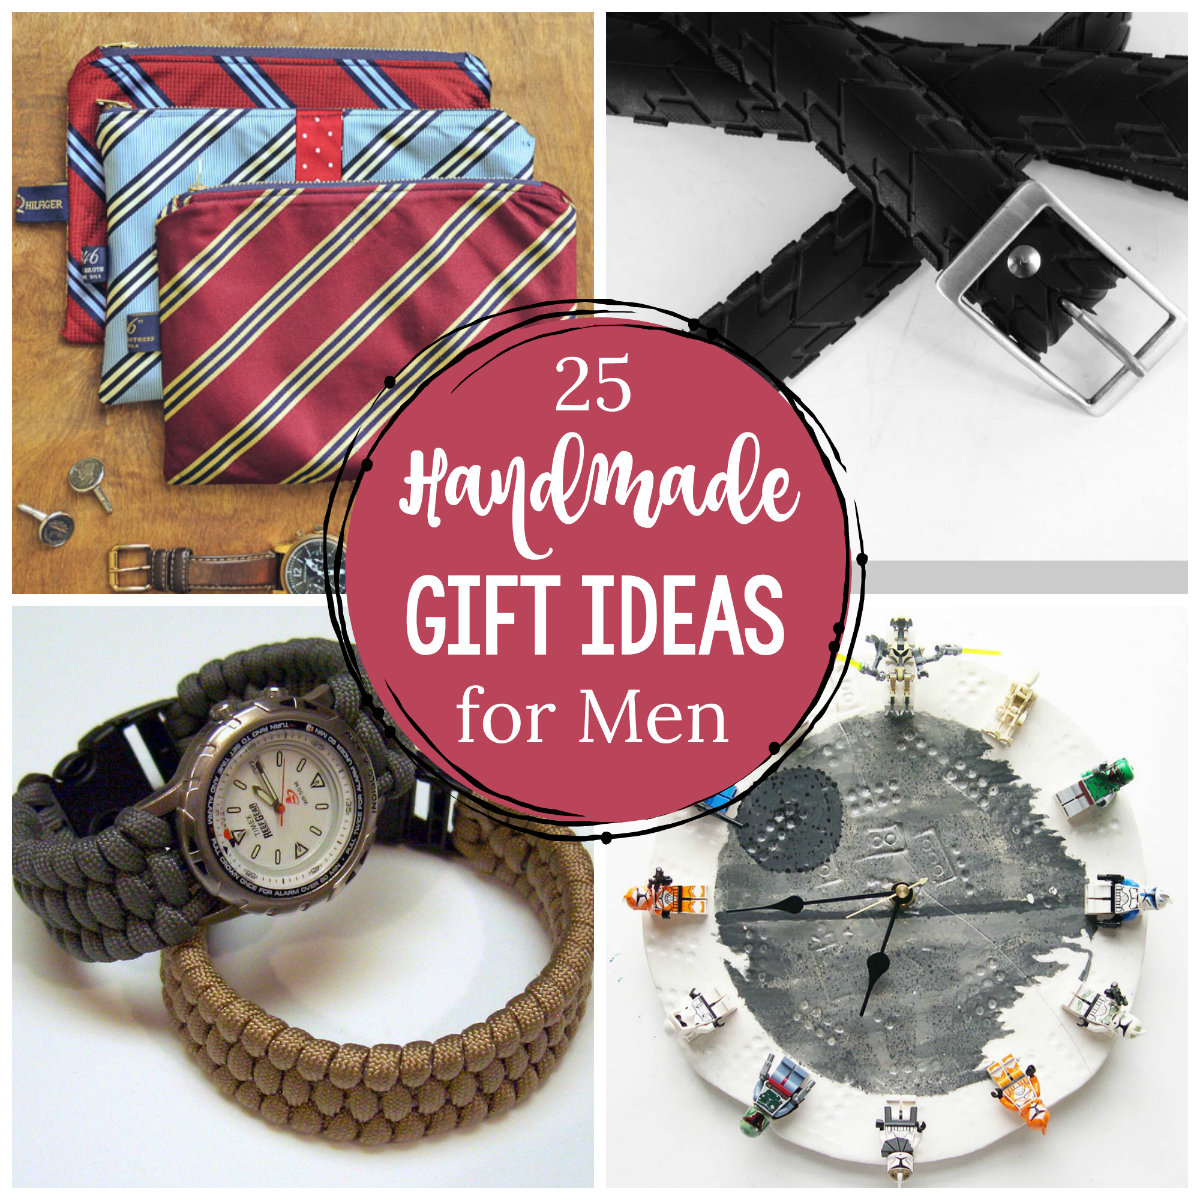 25 Great Handmade Gifts for Men - Crazy Little Projects